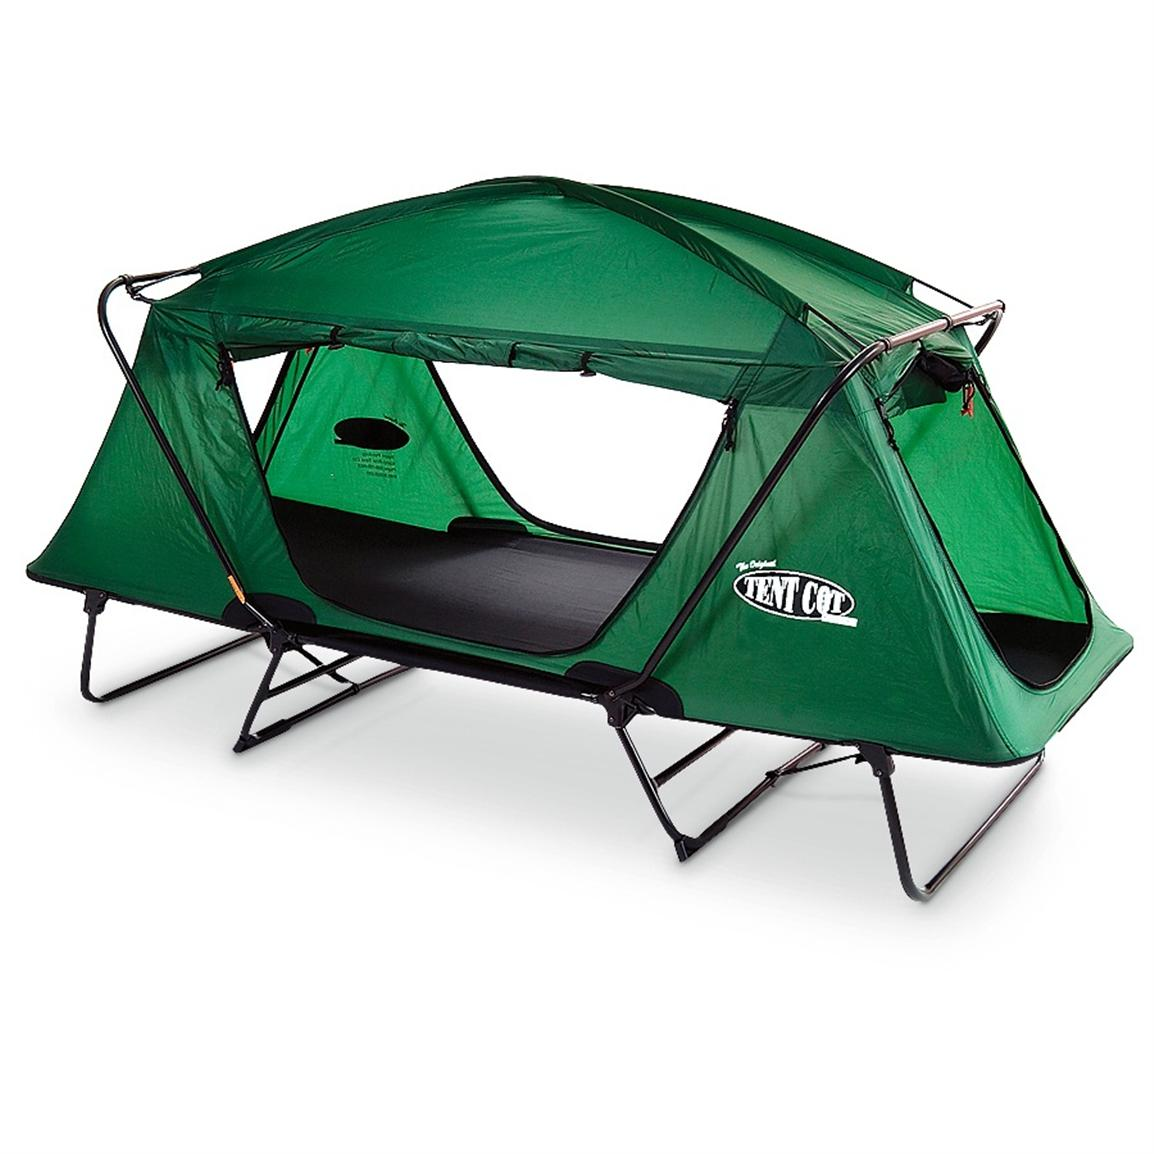 Oversize 1 Man Tent Cot 201247 Cots At Sportsman S Guide